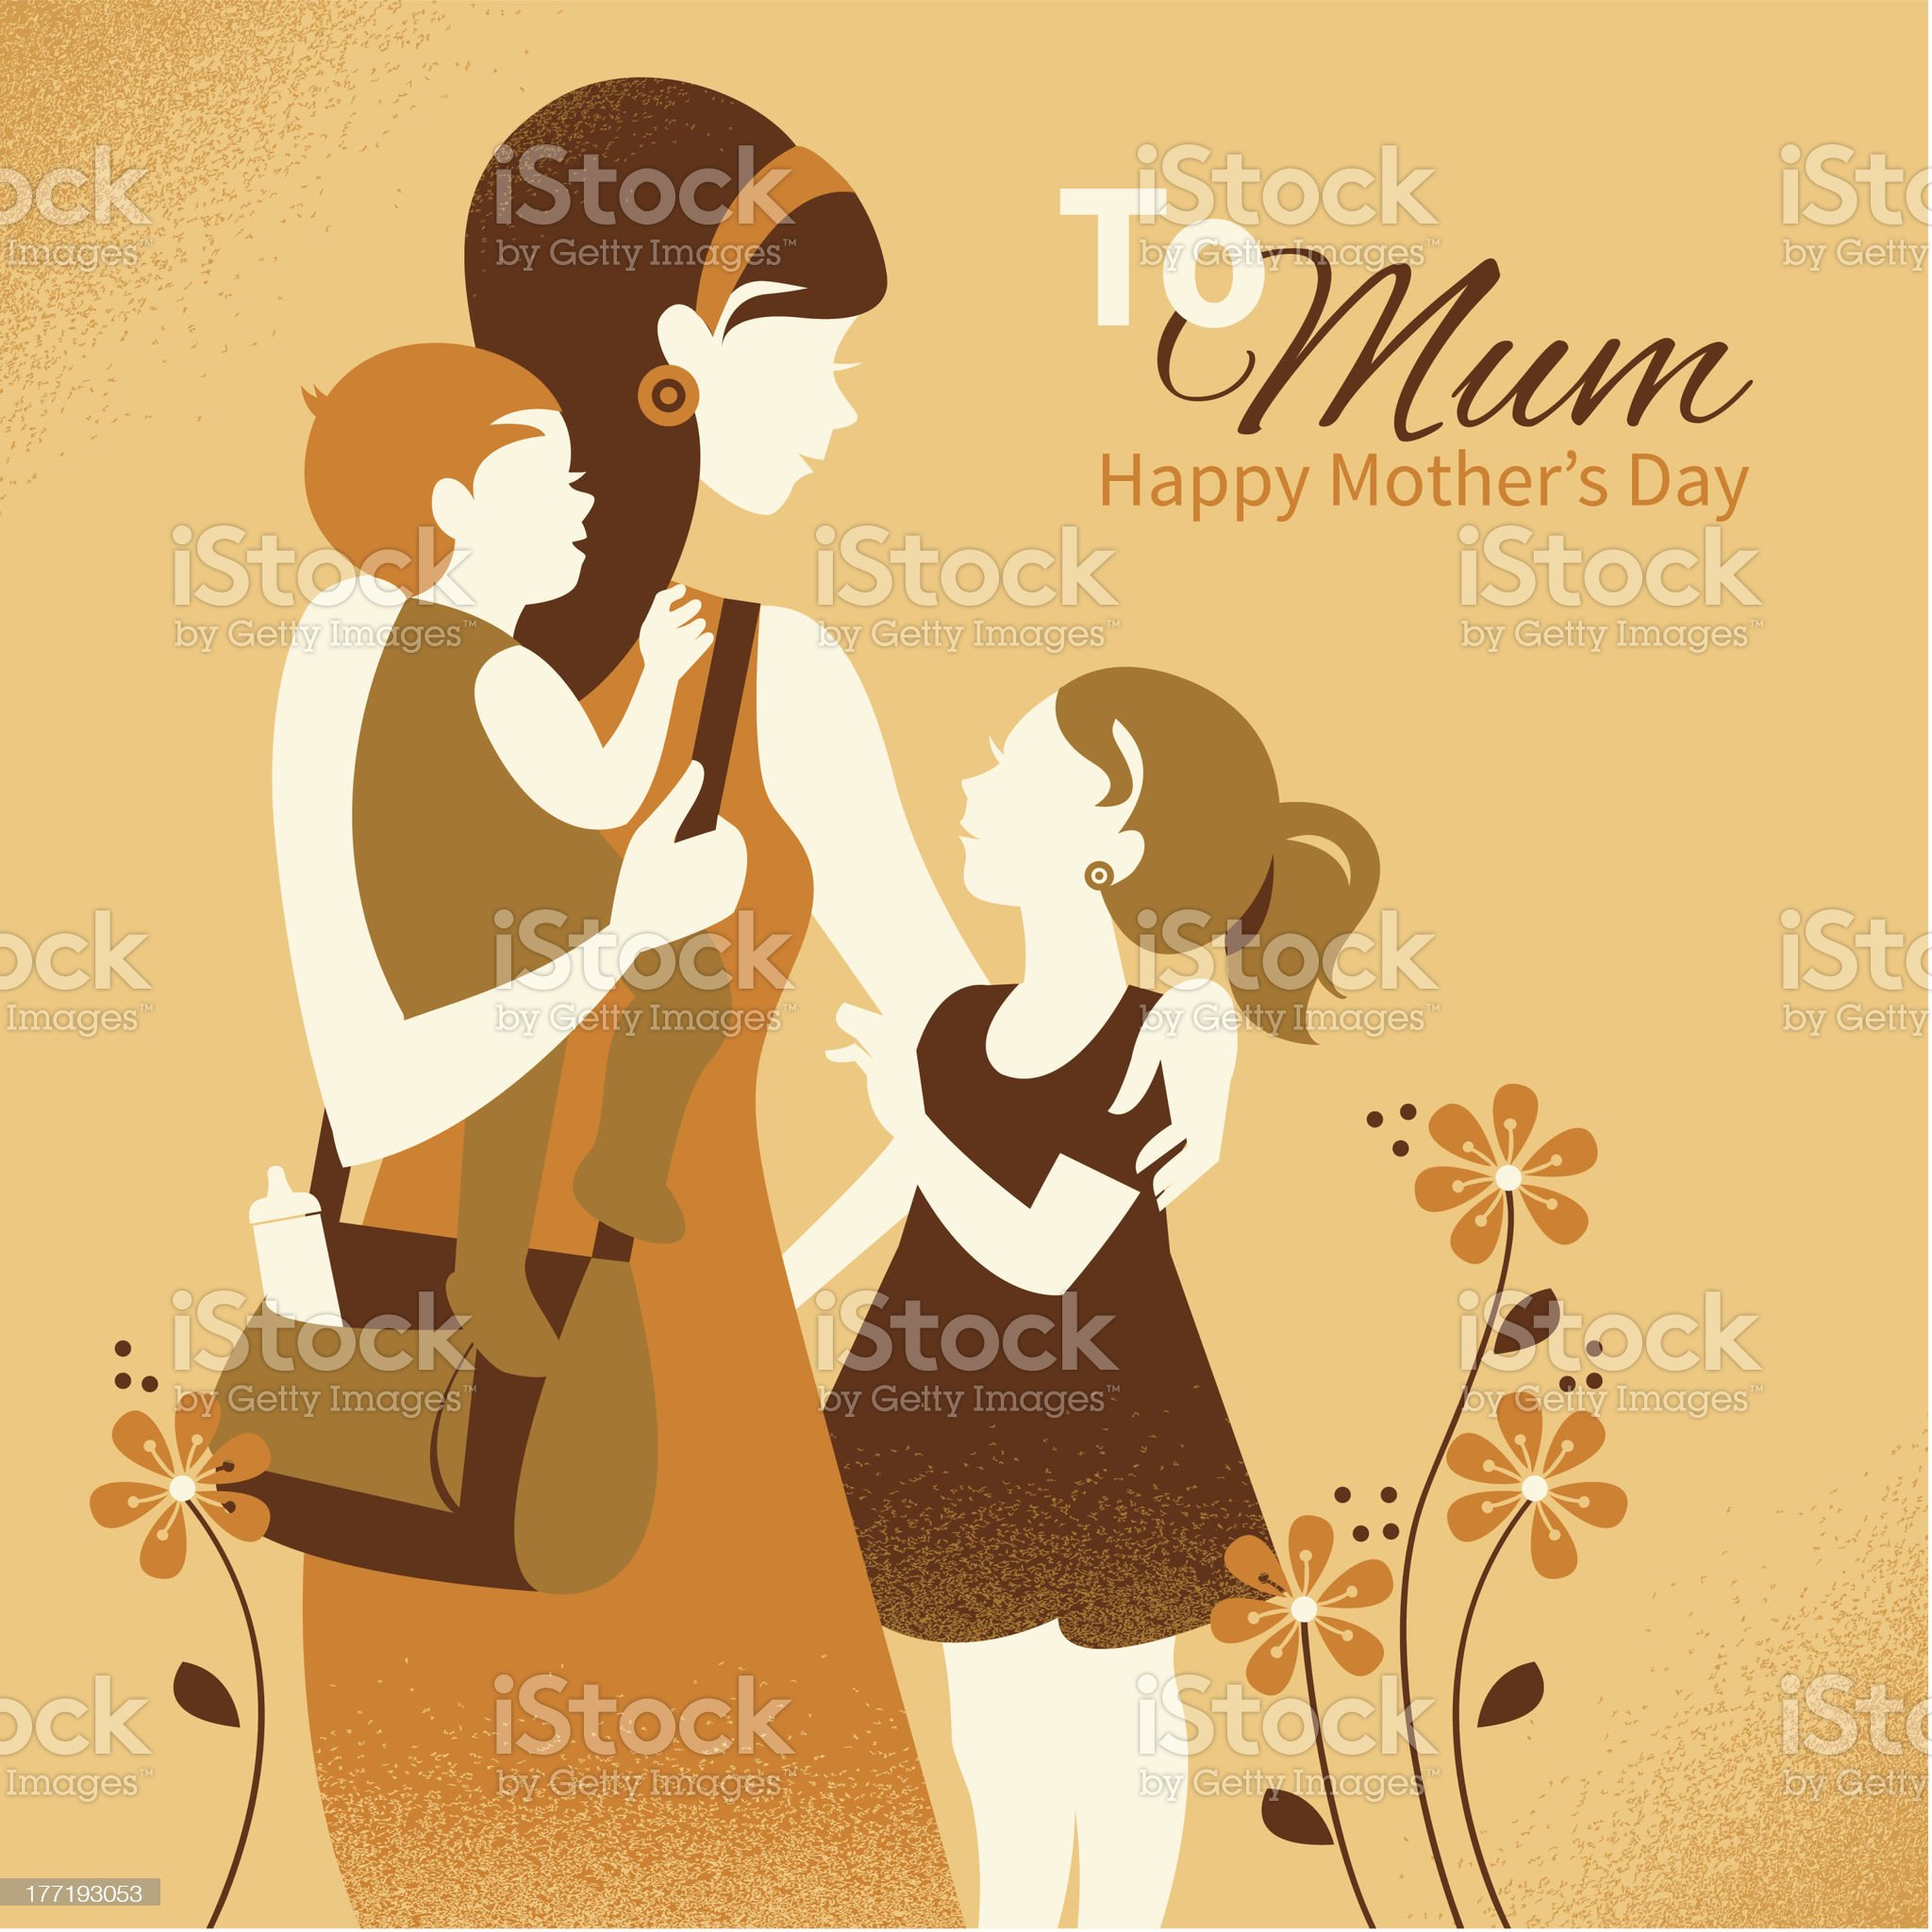 Beautiful mother silhouette with her children royalty-free stock vector art